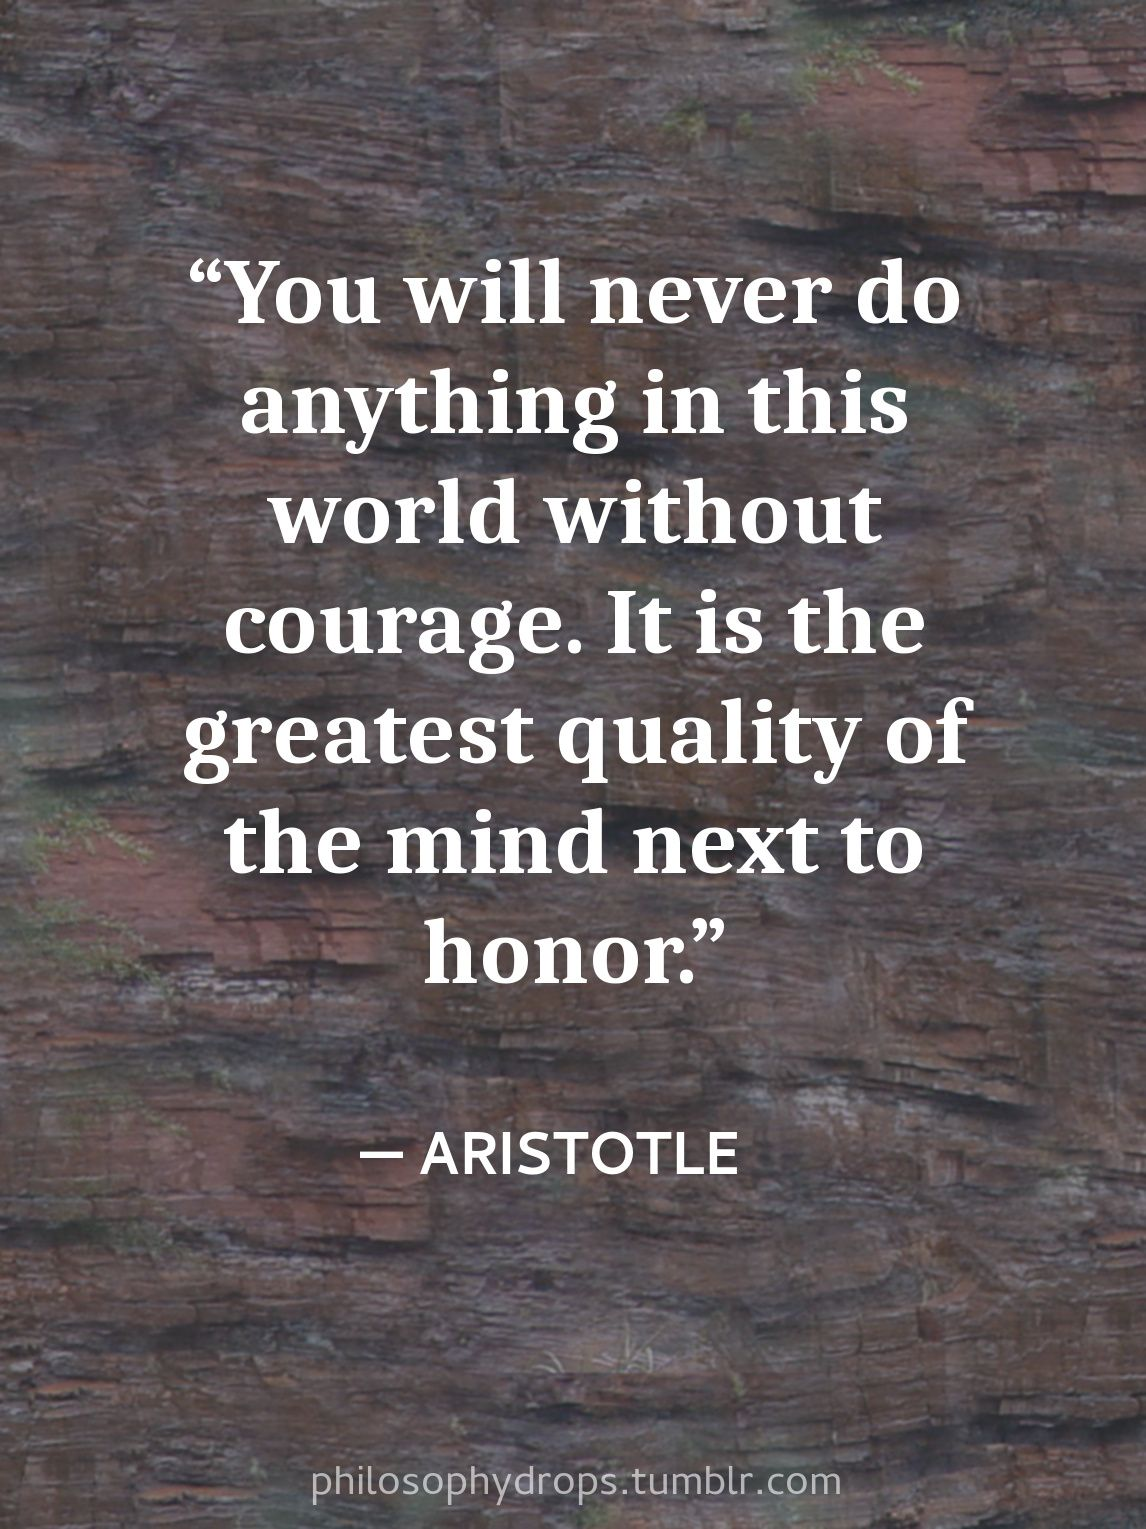 Philosophy Quotes Philosophy Quotes Aristotle Courage Honor Greatest Quality Photo